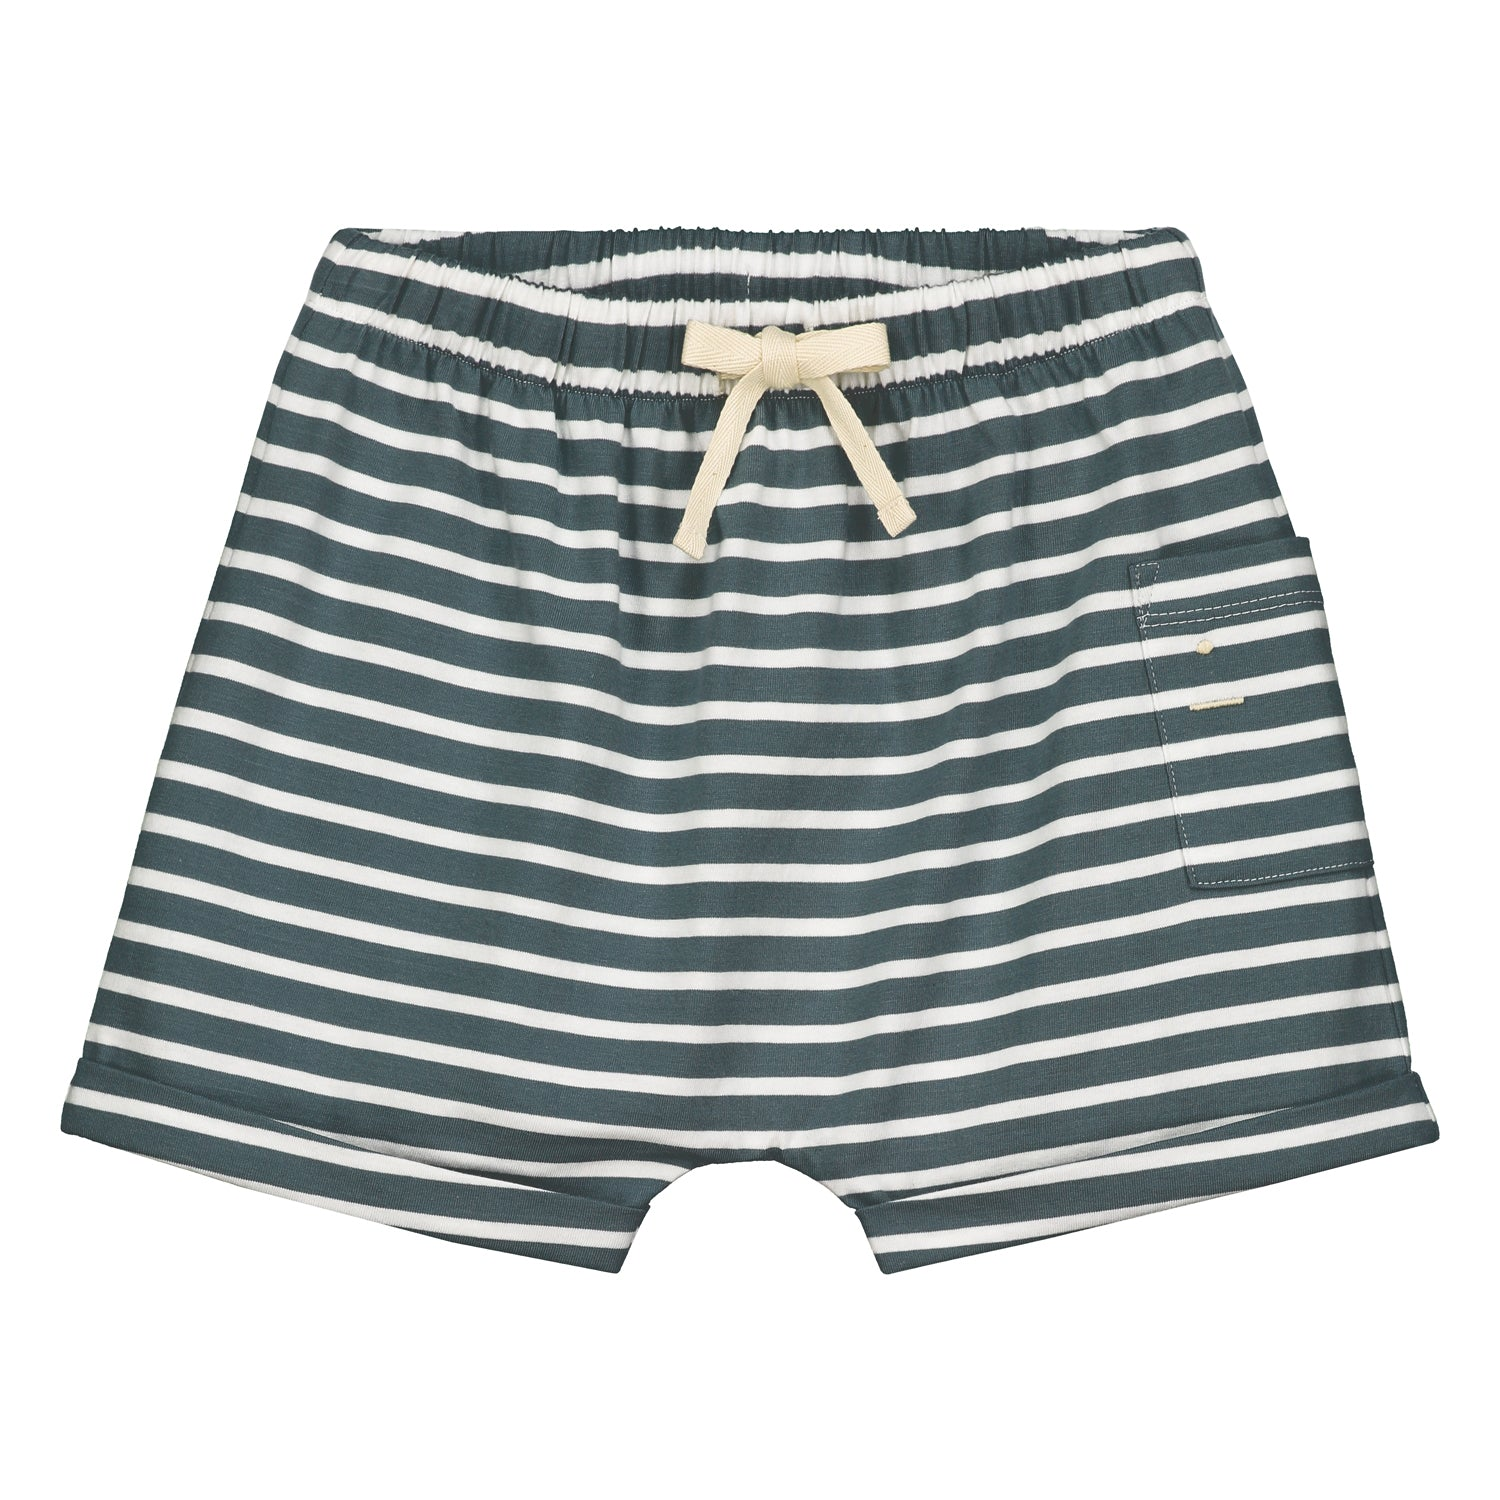 Short One Pocket Blue Grey White Striped